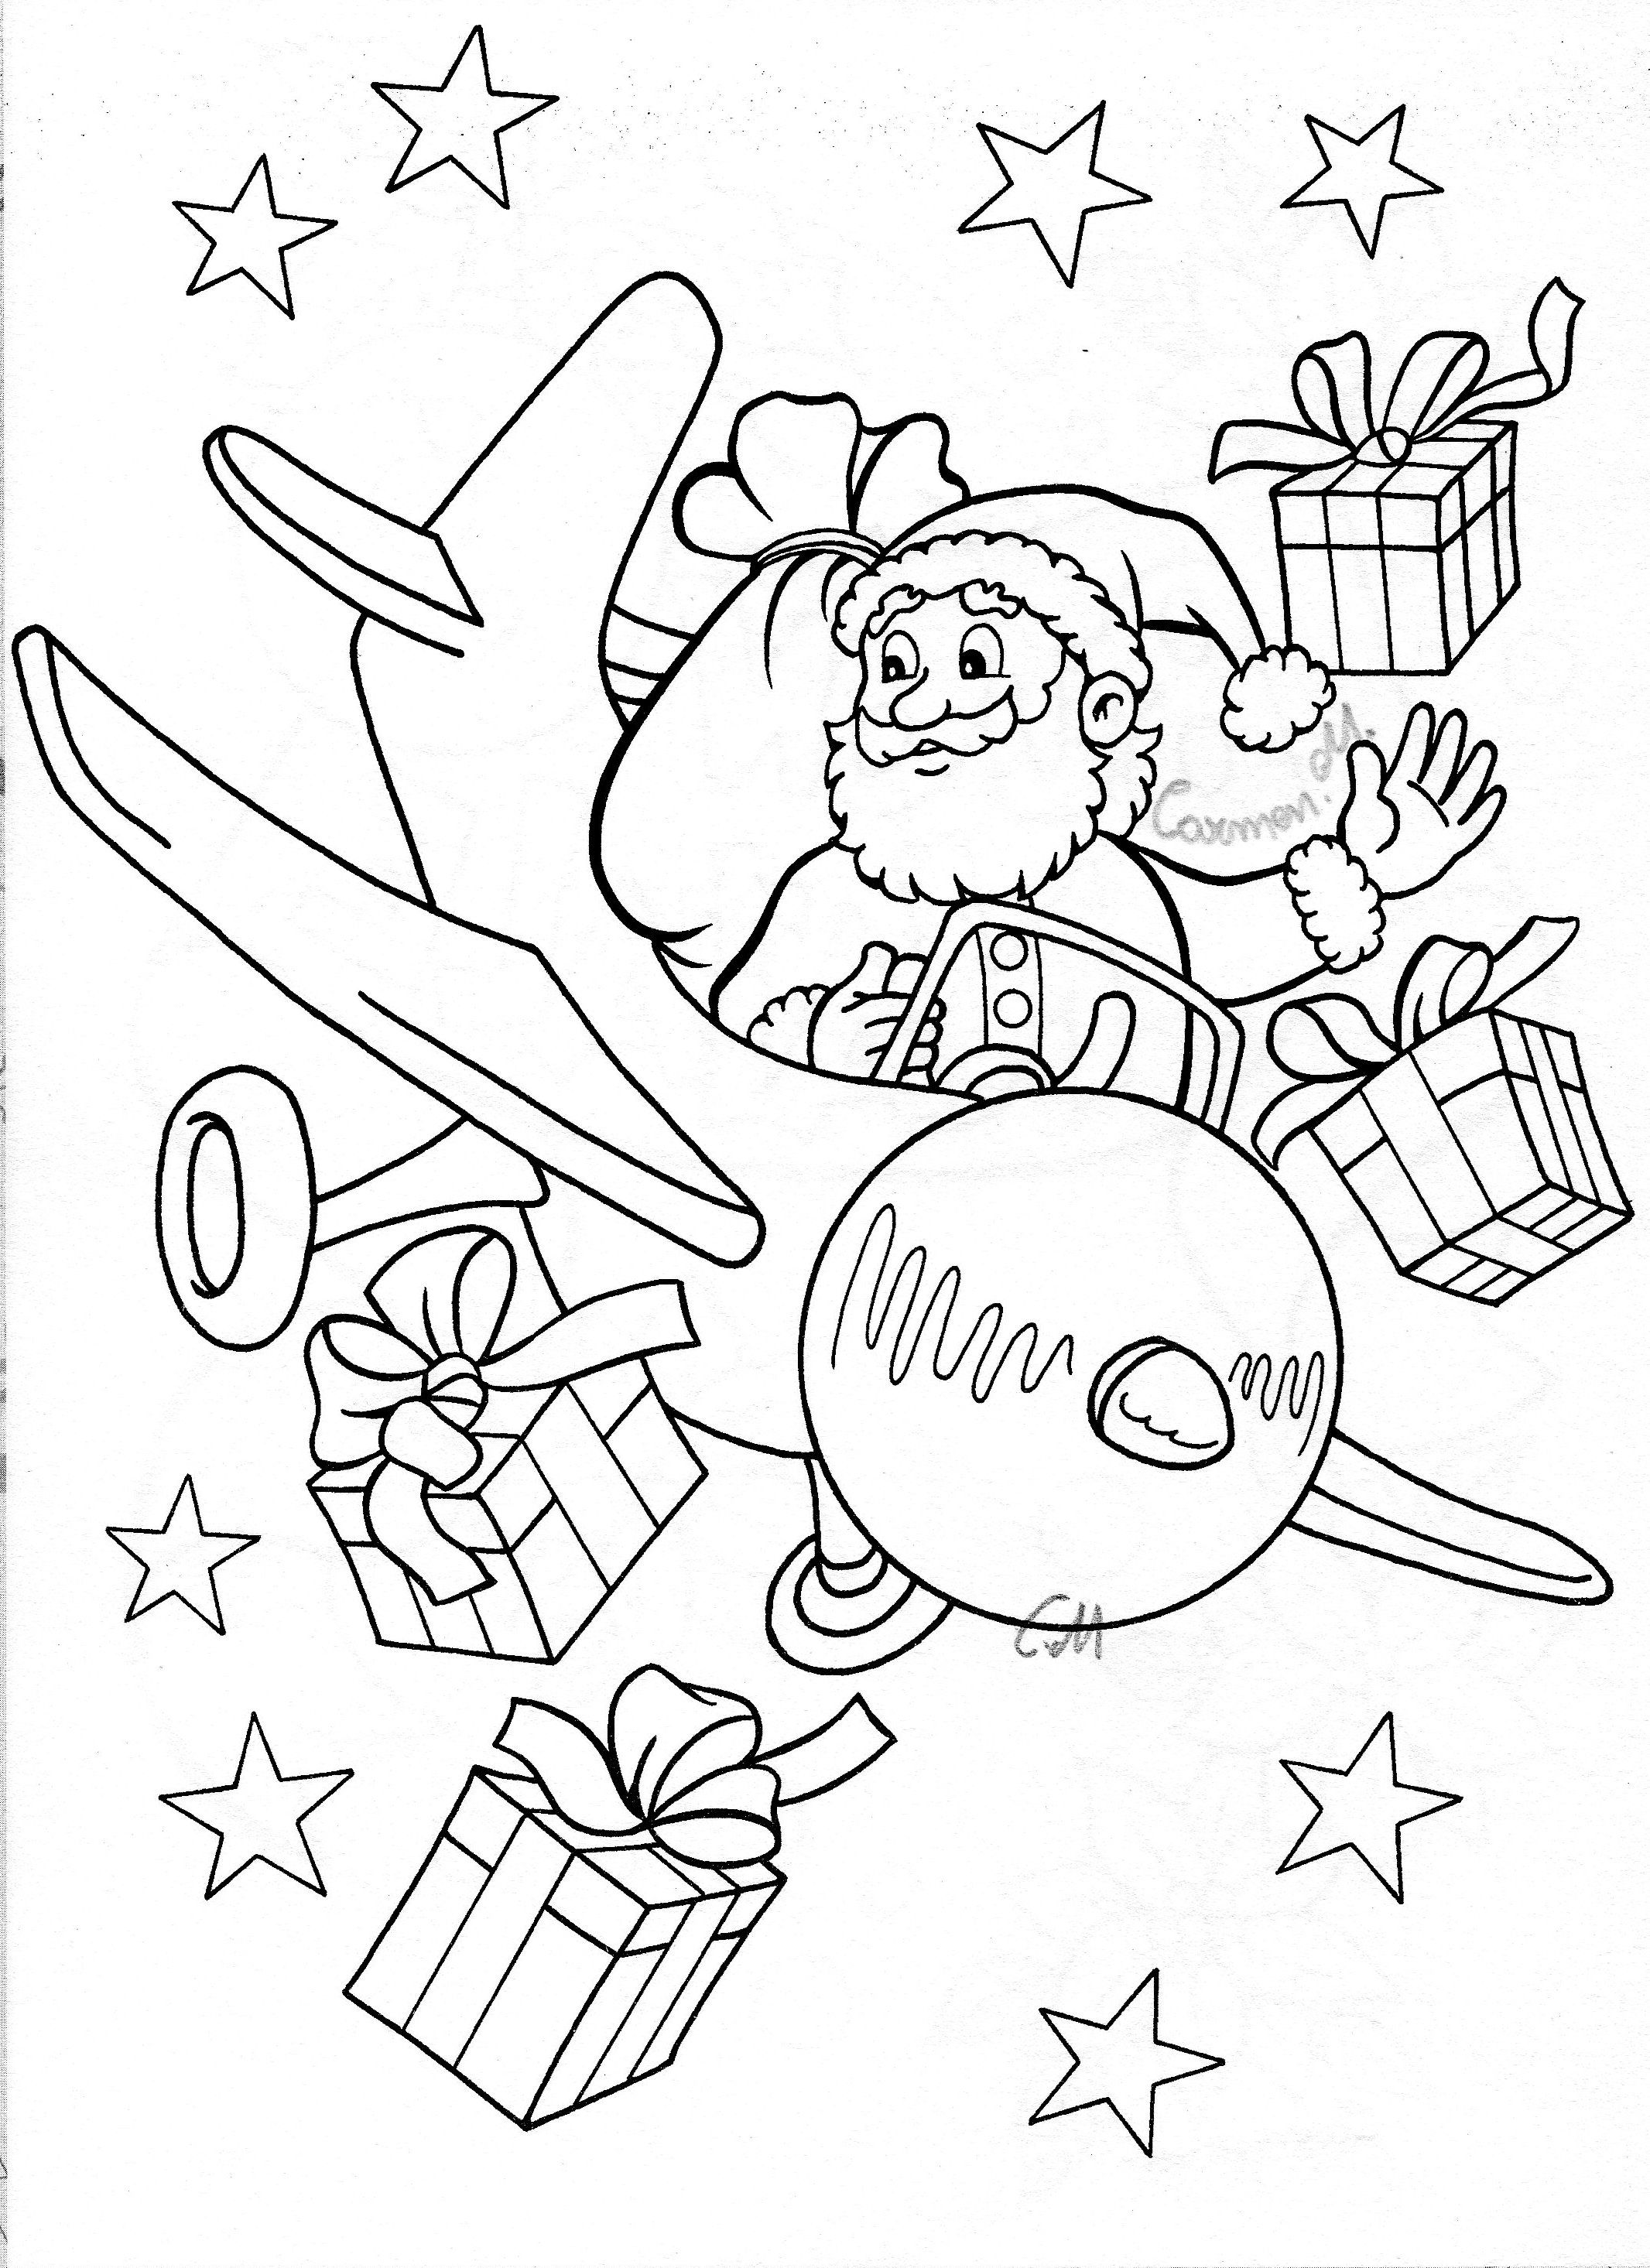 Pin by Kaylie Taylor on The Big Christmas Colouring And Puzzle Book ...